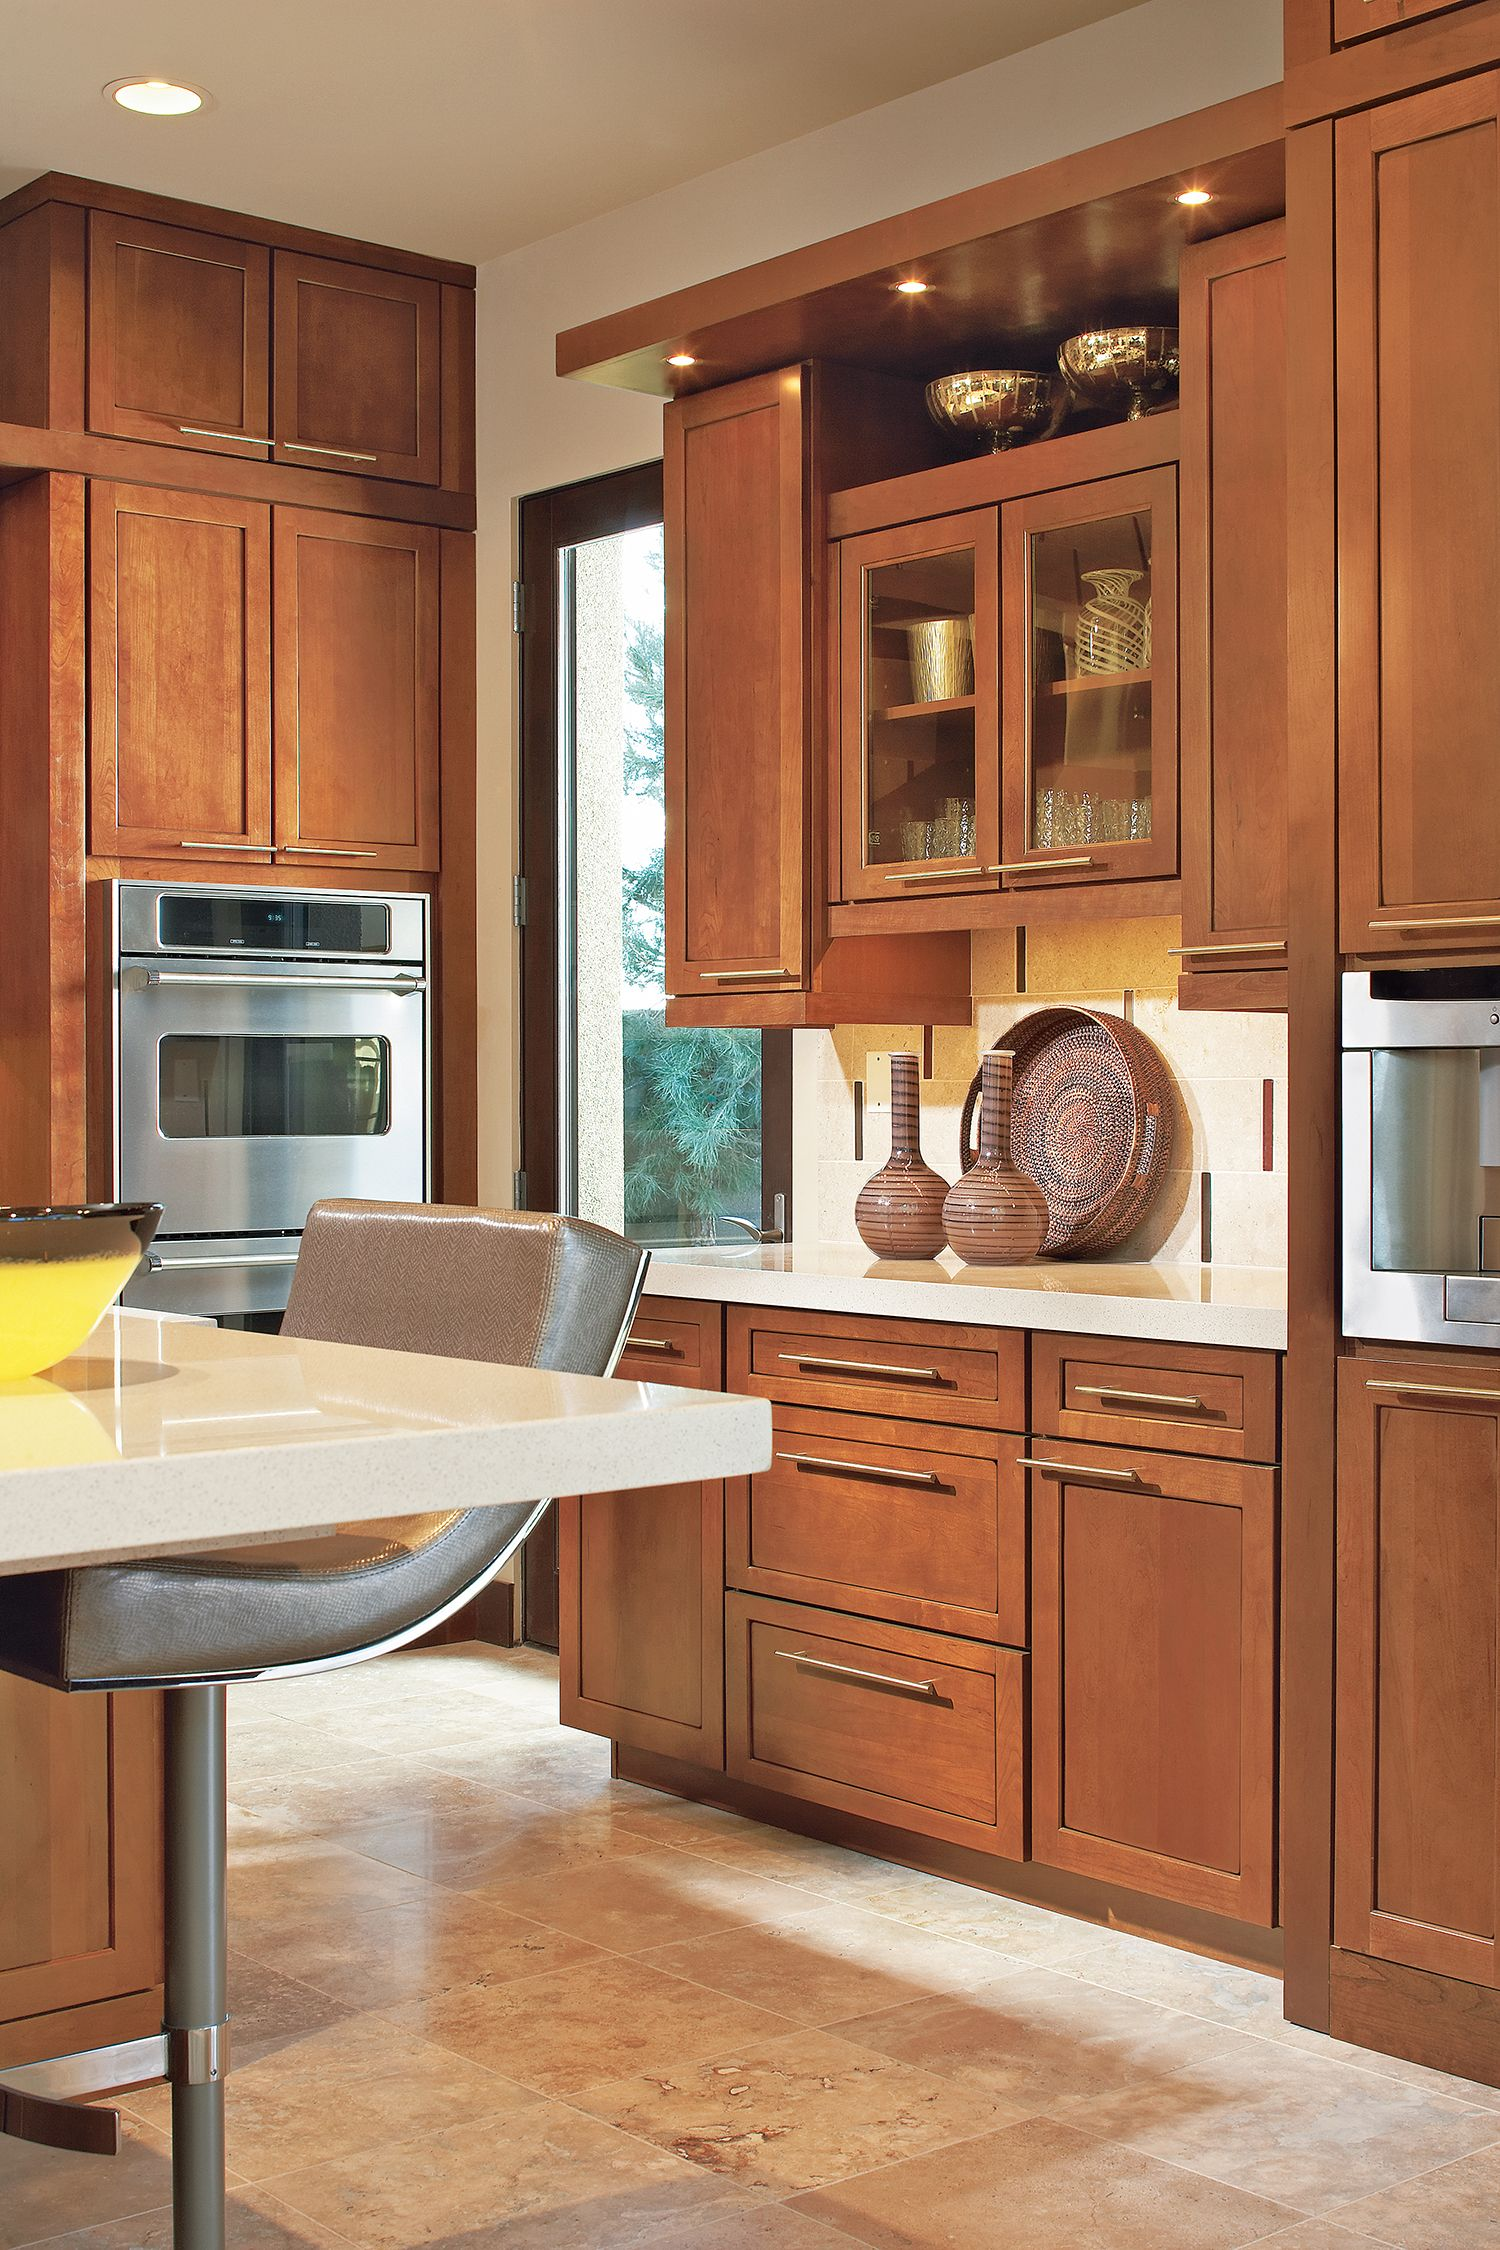 Read This Before You Remodel A Kitchen Kitchen Remodel Kitchen Design Outdoor Kitchen Cabinets